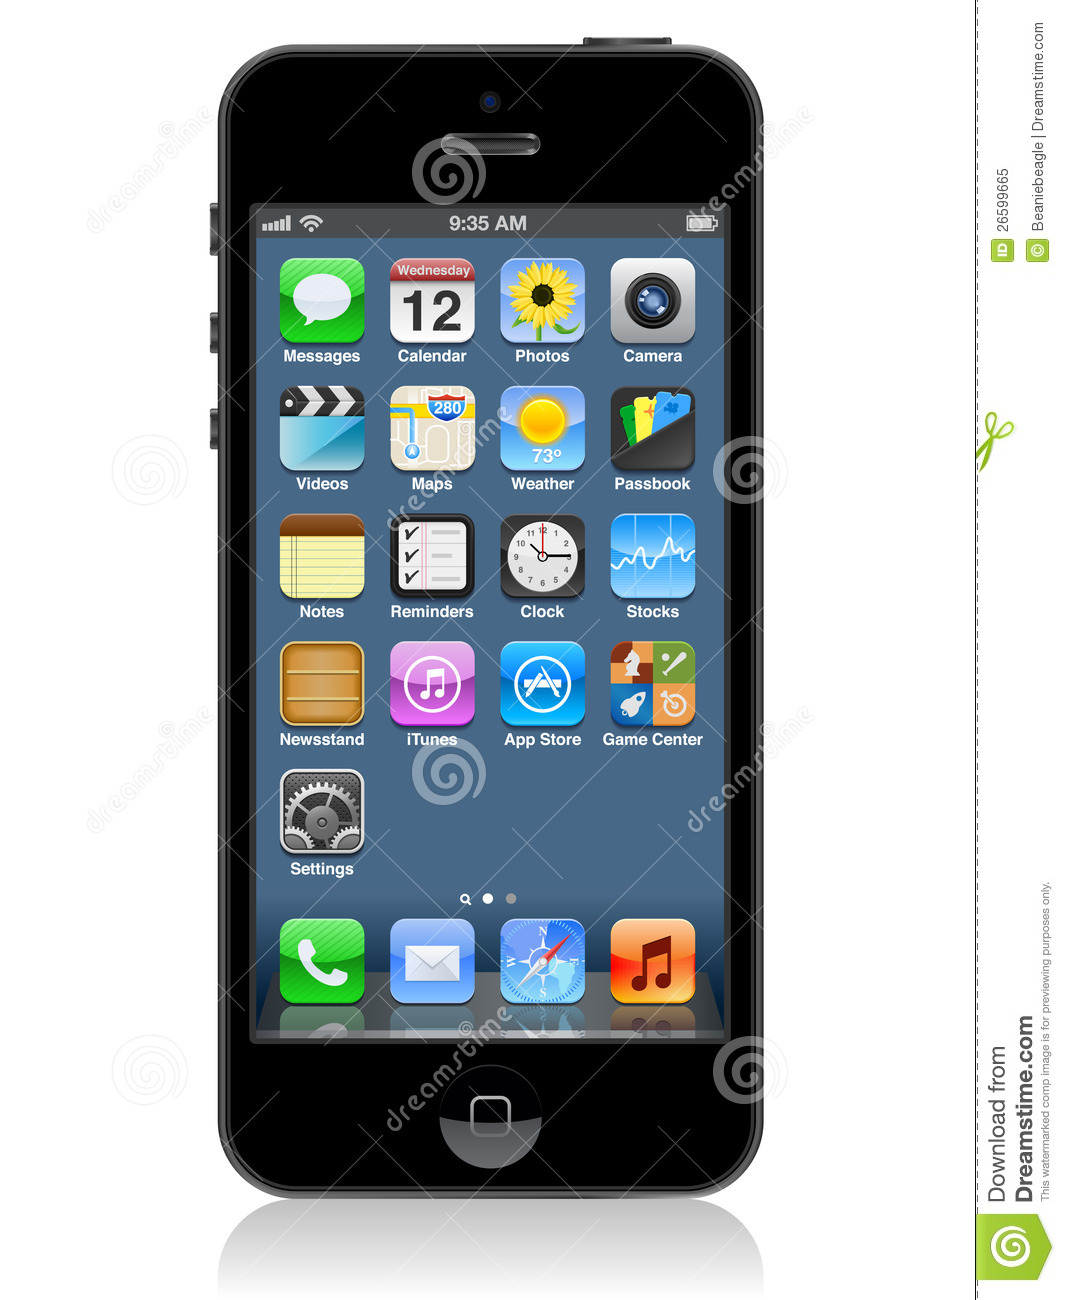 Jpegs or cliparts for ios apps vector royalty free stock Iphone Clipart   Free download best Iphone Clipart on ClipArtMag.com vector royalty free stock